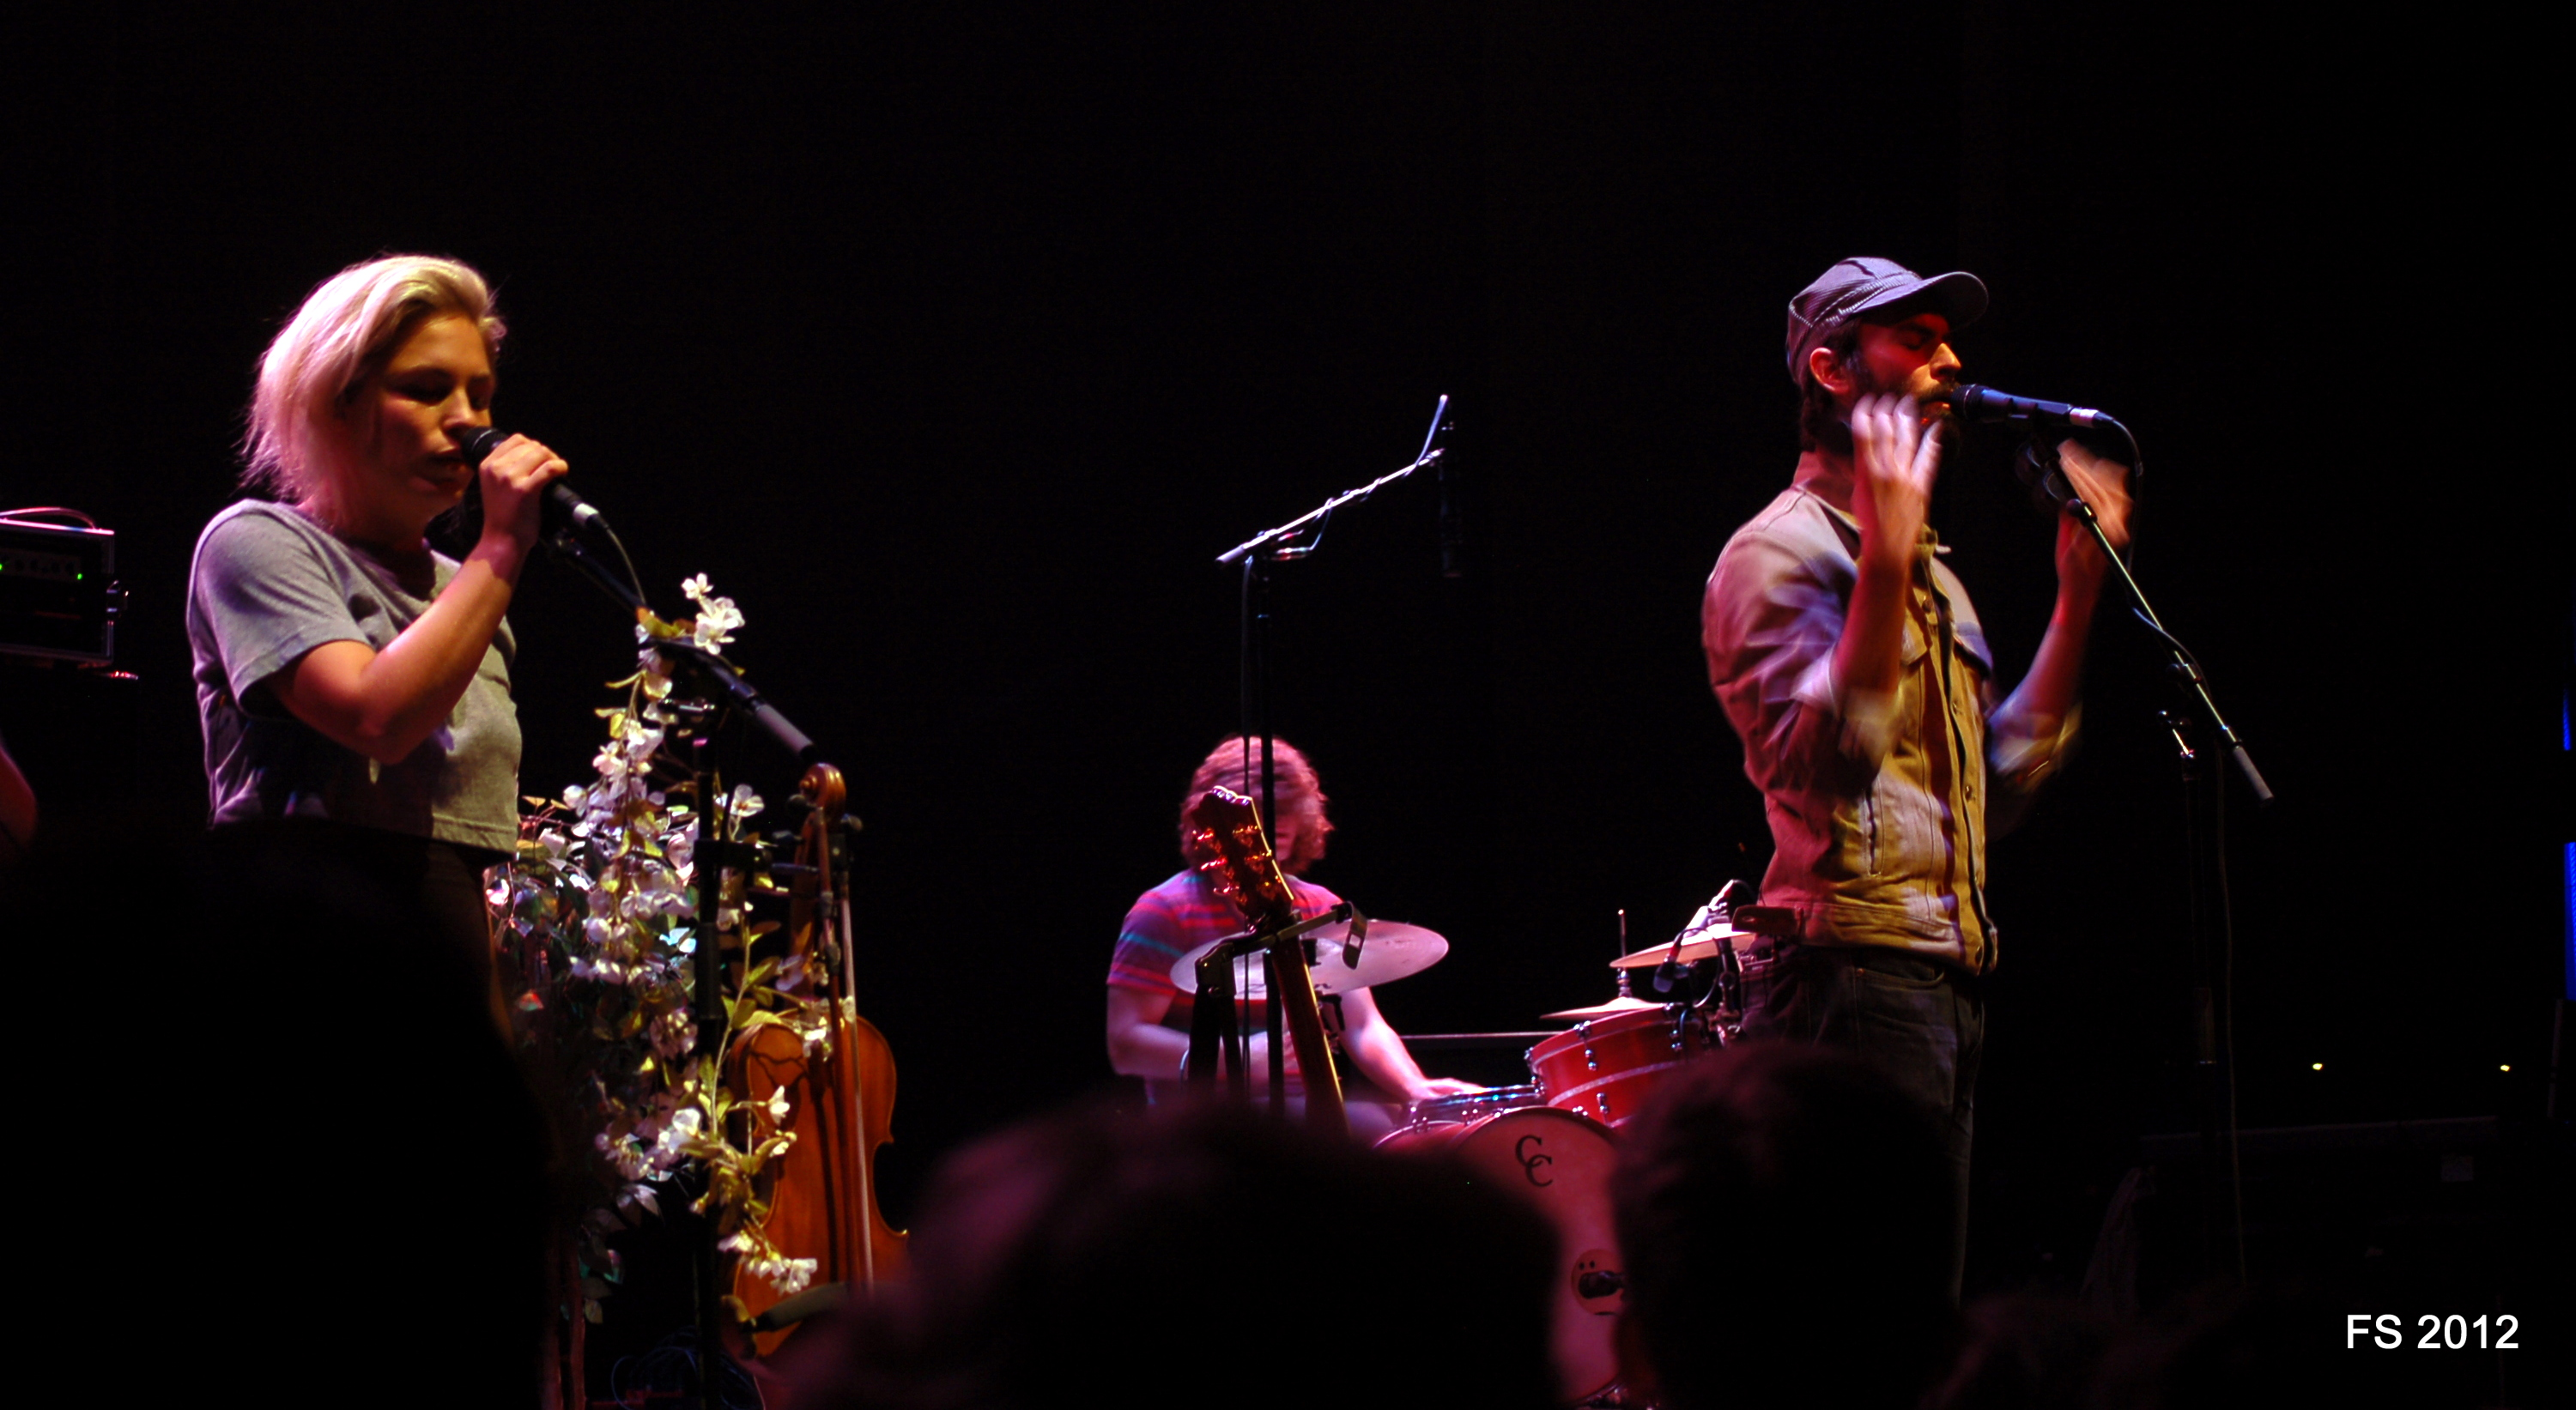 Photos: The Head & The Heart, Blitzen Trapper and Bryan John Appleby, September, 28th 2012 @ Capitol Theater